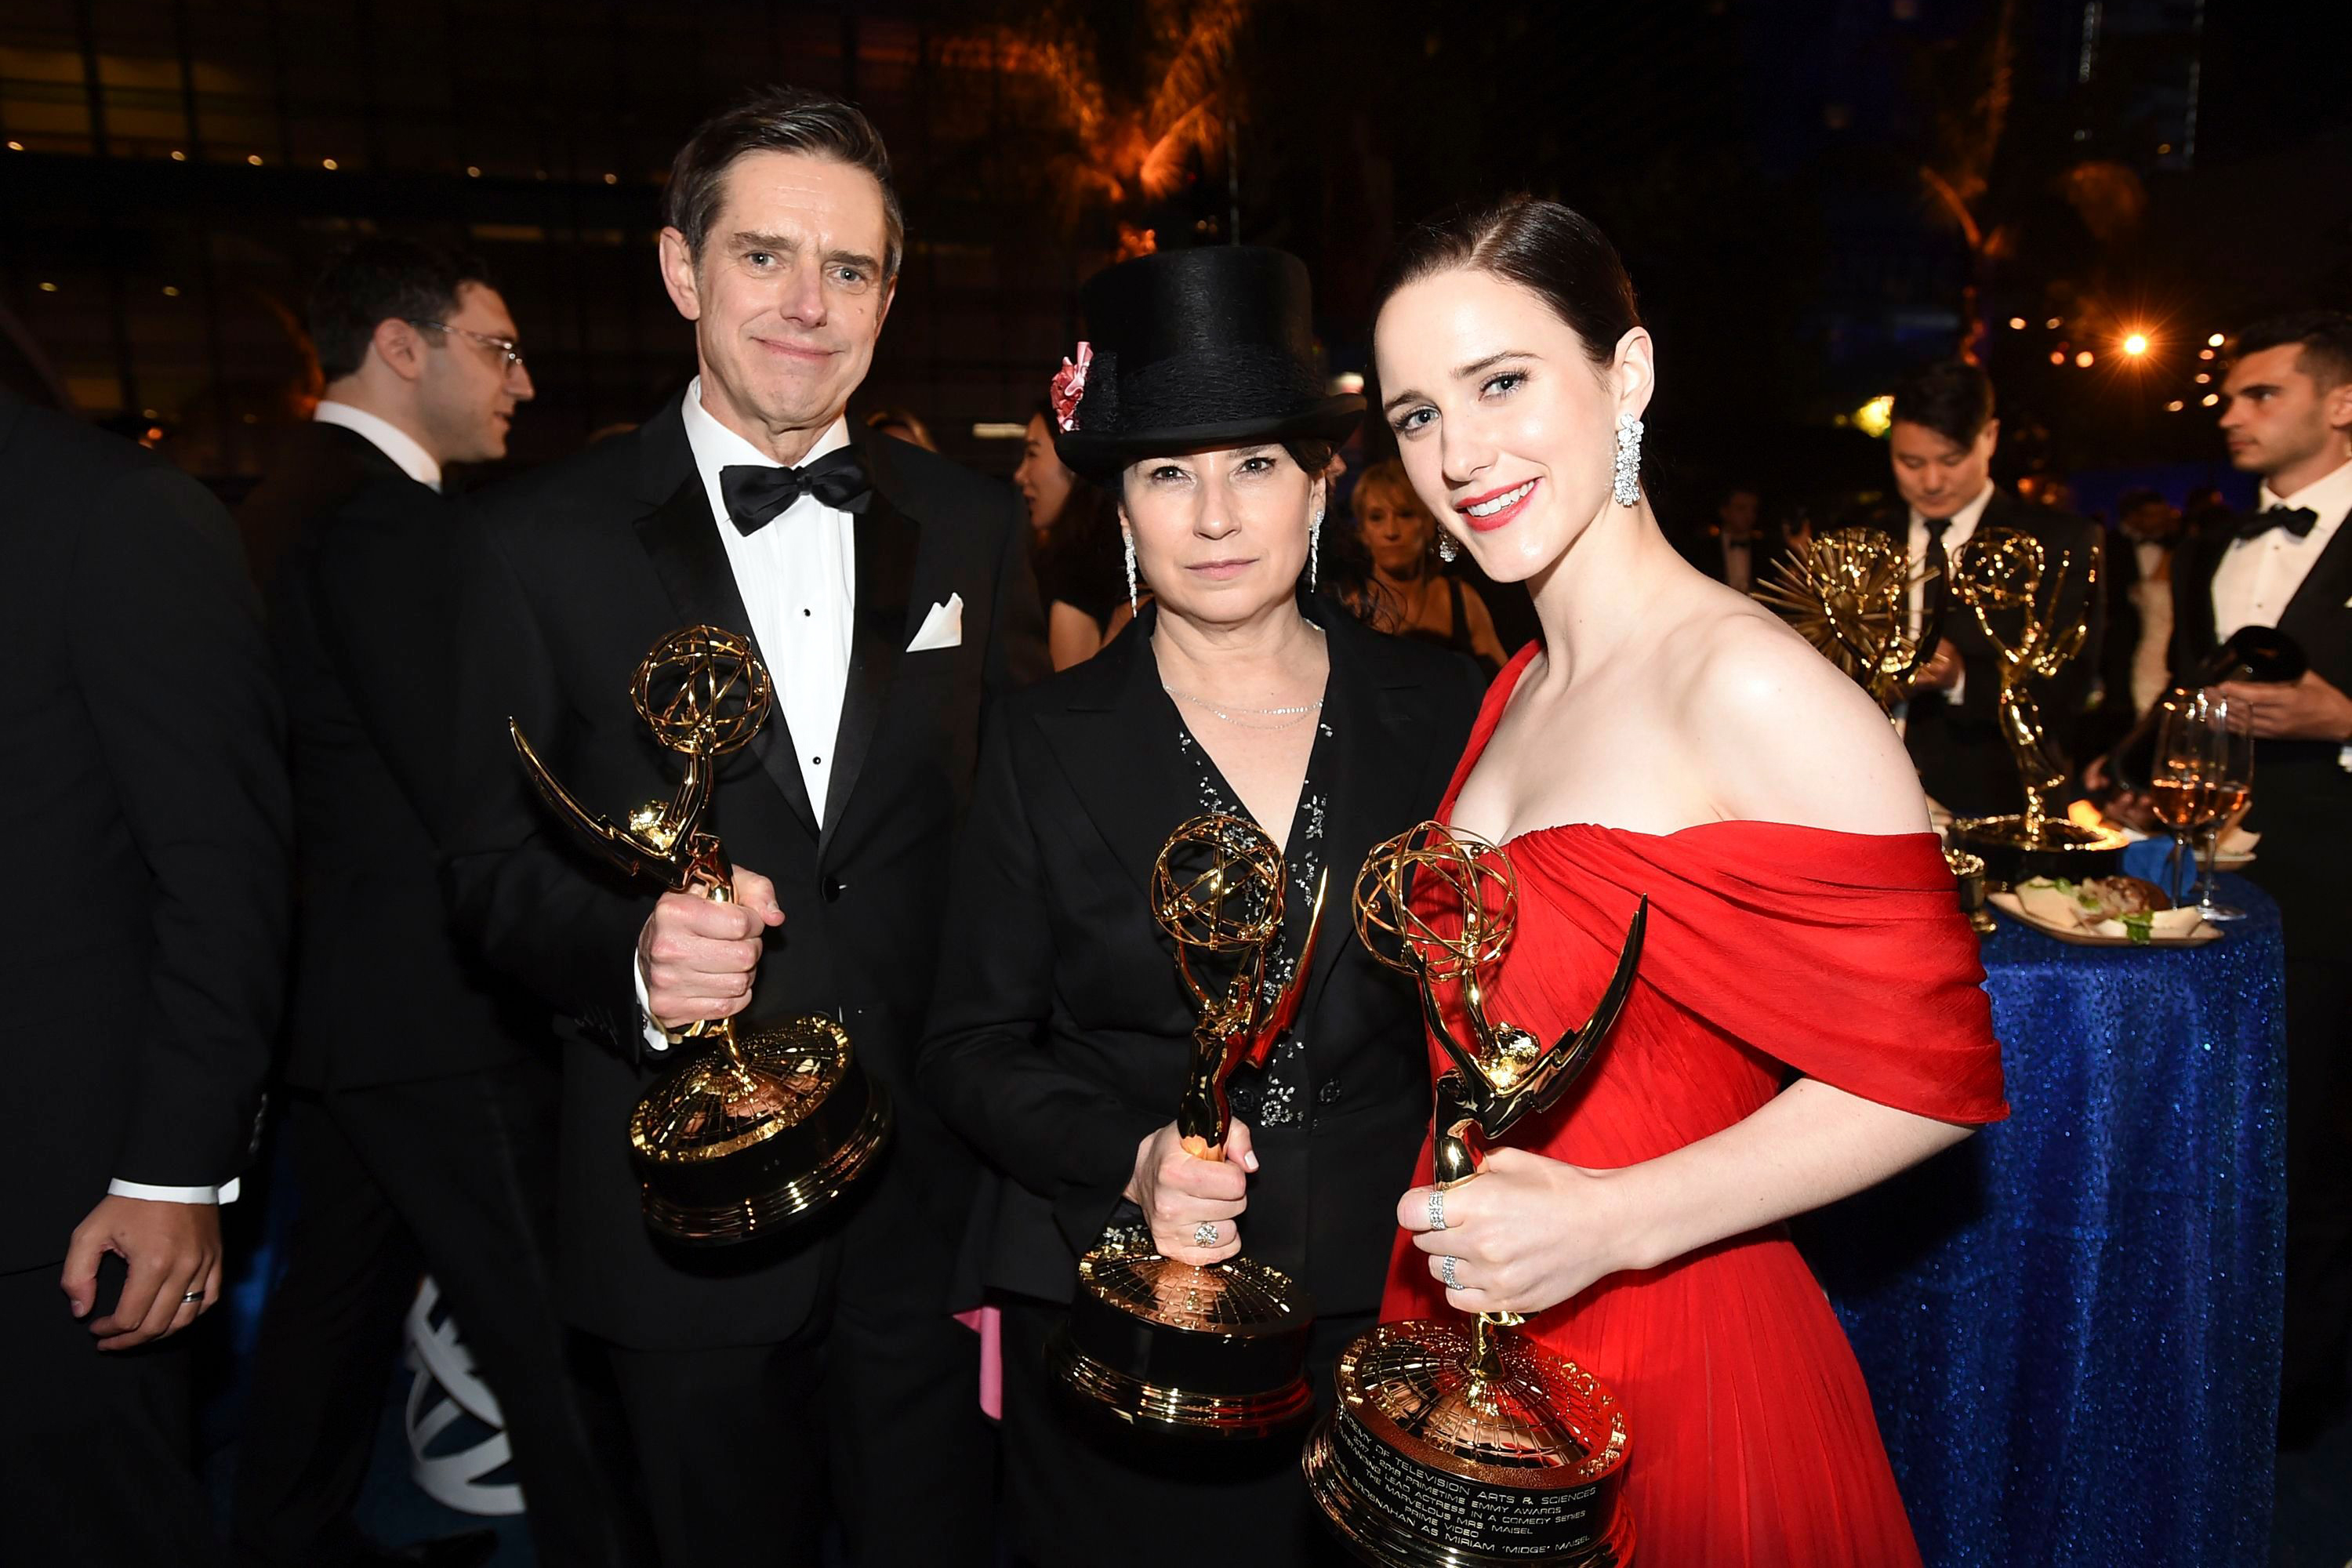 "Daniel Palladino, Amy Sherman-Palladino, Rachel Brosnahan. Daniel Palladino, and Amy Sherman-Palladino, winners of the award for outstanding comedy series for ""The Marvelous Mrs. Maisel"", and Rachel Brosnahan, winner of the award for outstanding lead actress in a comedy series for ""The Marvelous Mrs. Maisel,"" attend the Governors Ball for the 70th Primetime Emmy Awards, at the Microsoft Theater in Los Angeles70th Primetime Emmy Awards - Governors Ball, Los Angeles, USA - 17 Sep 2018"